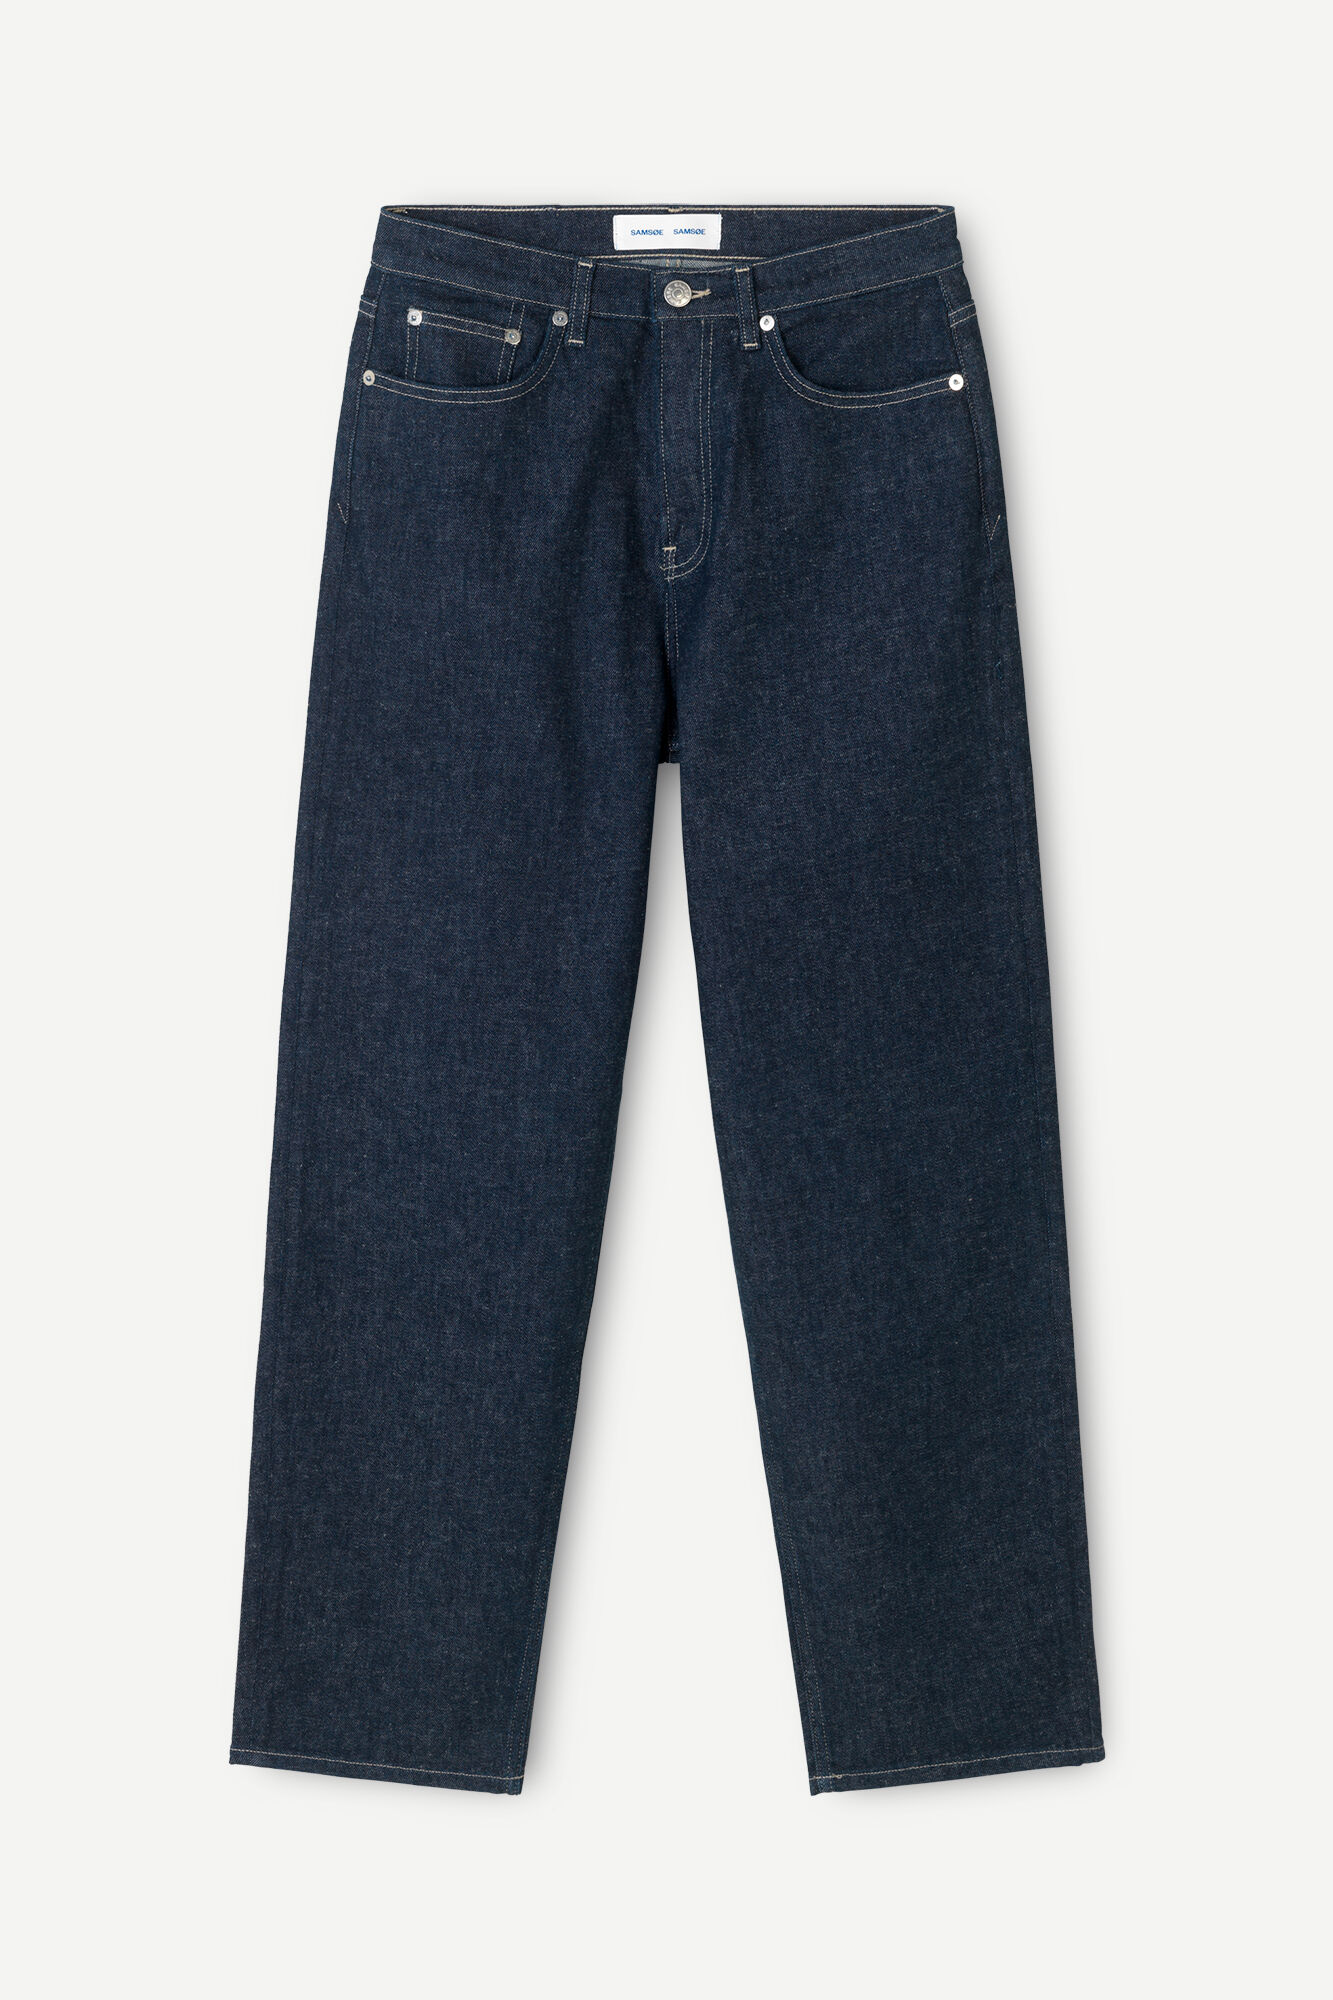 Elly jeans 14031